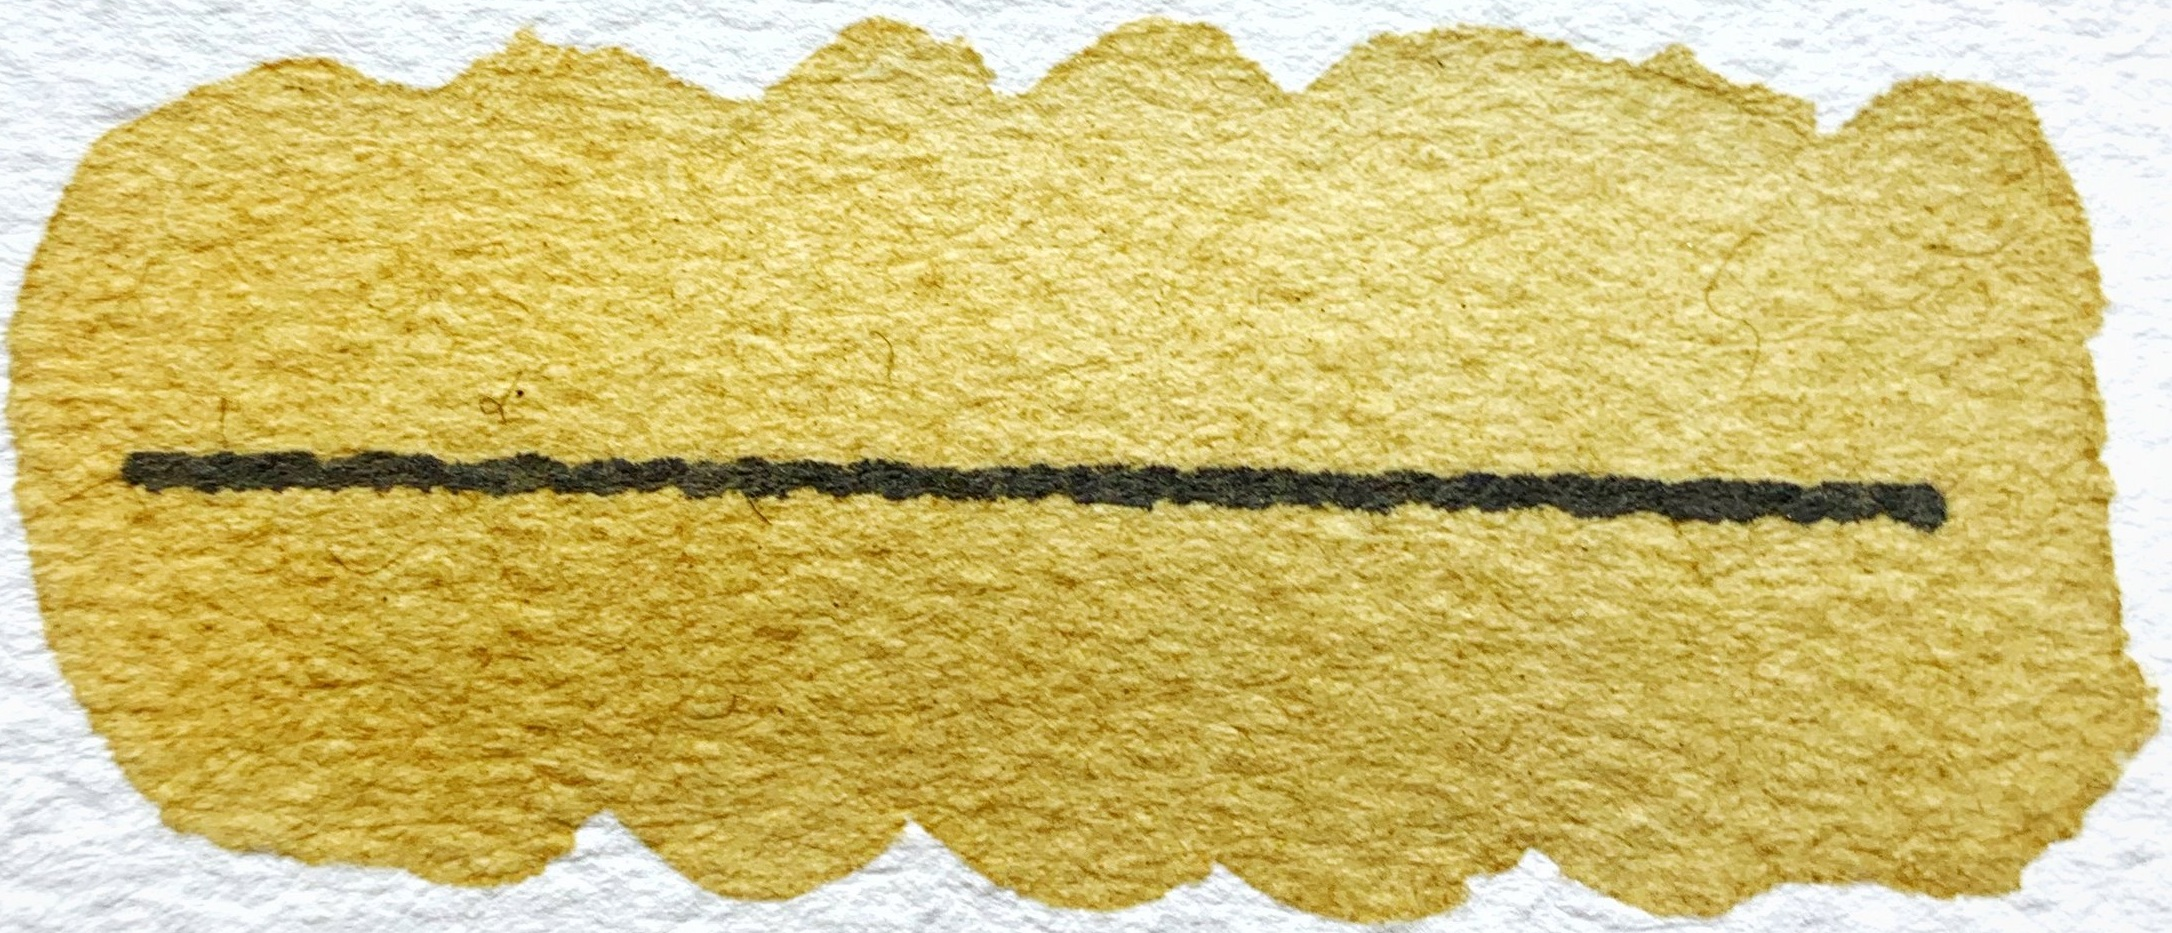 Hey Y'All - Yellow ochre, semi transparent, lightfast, mildly staining